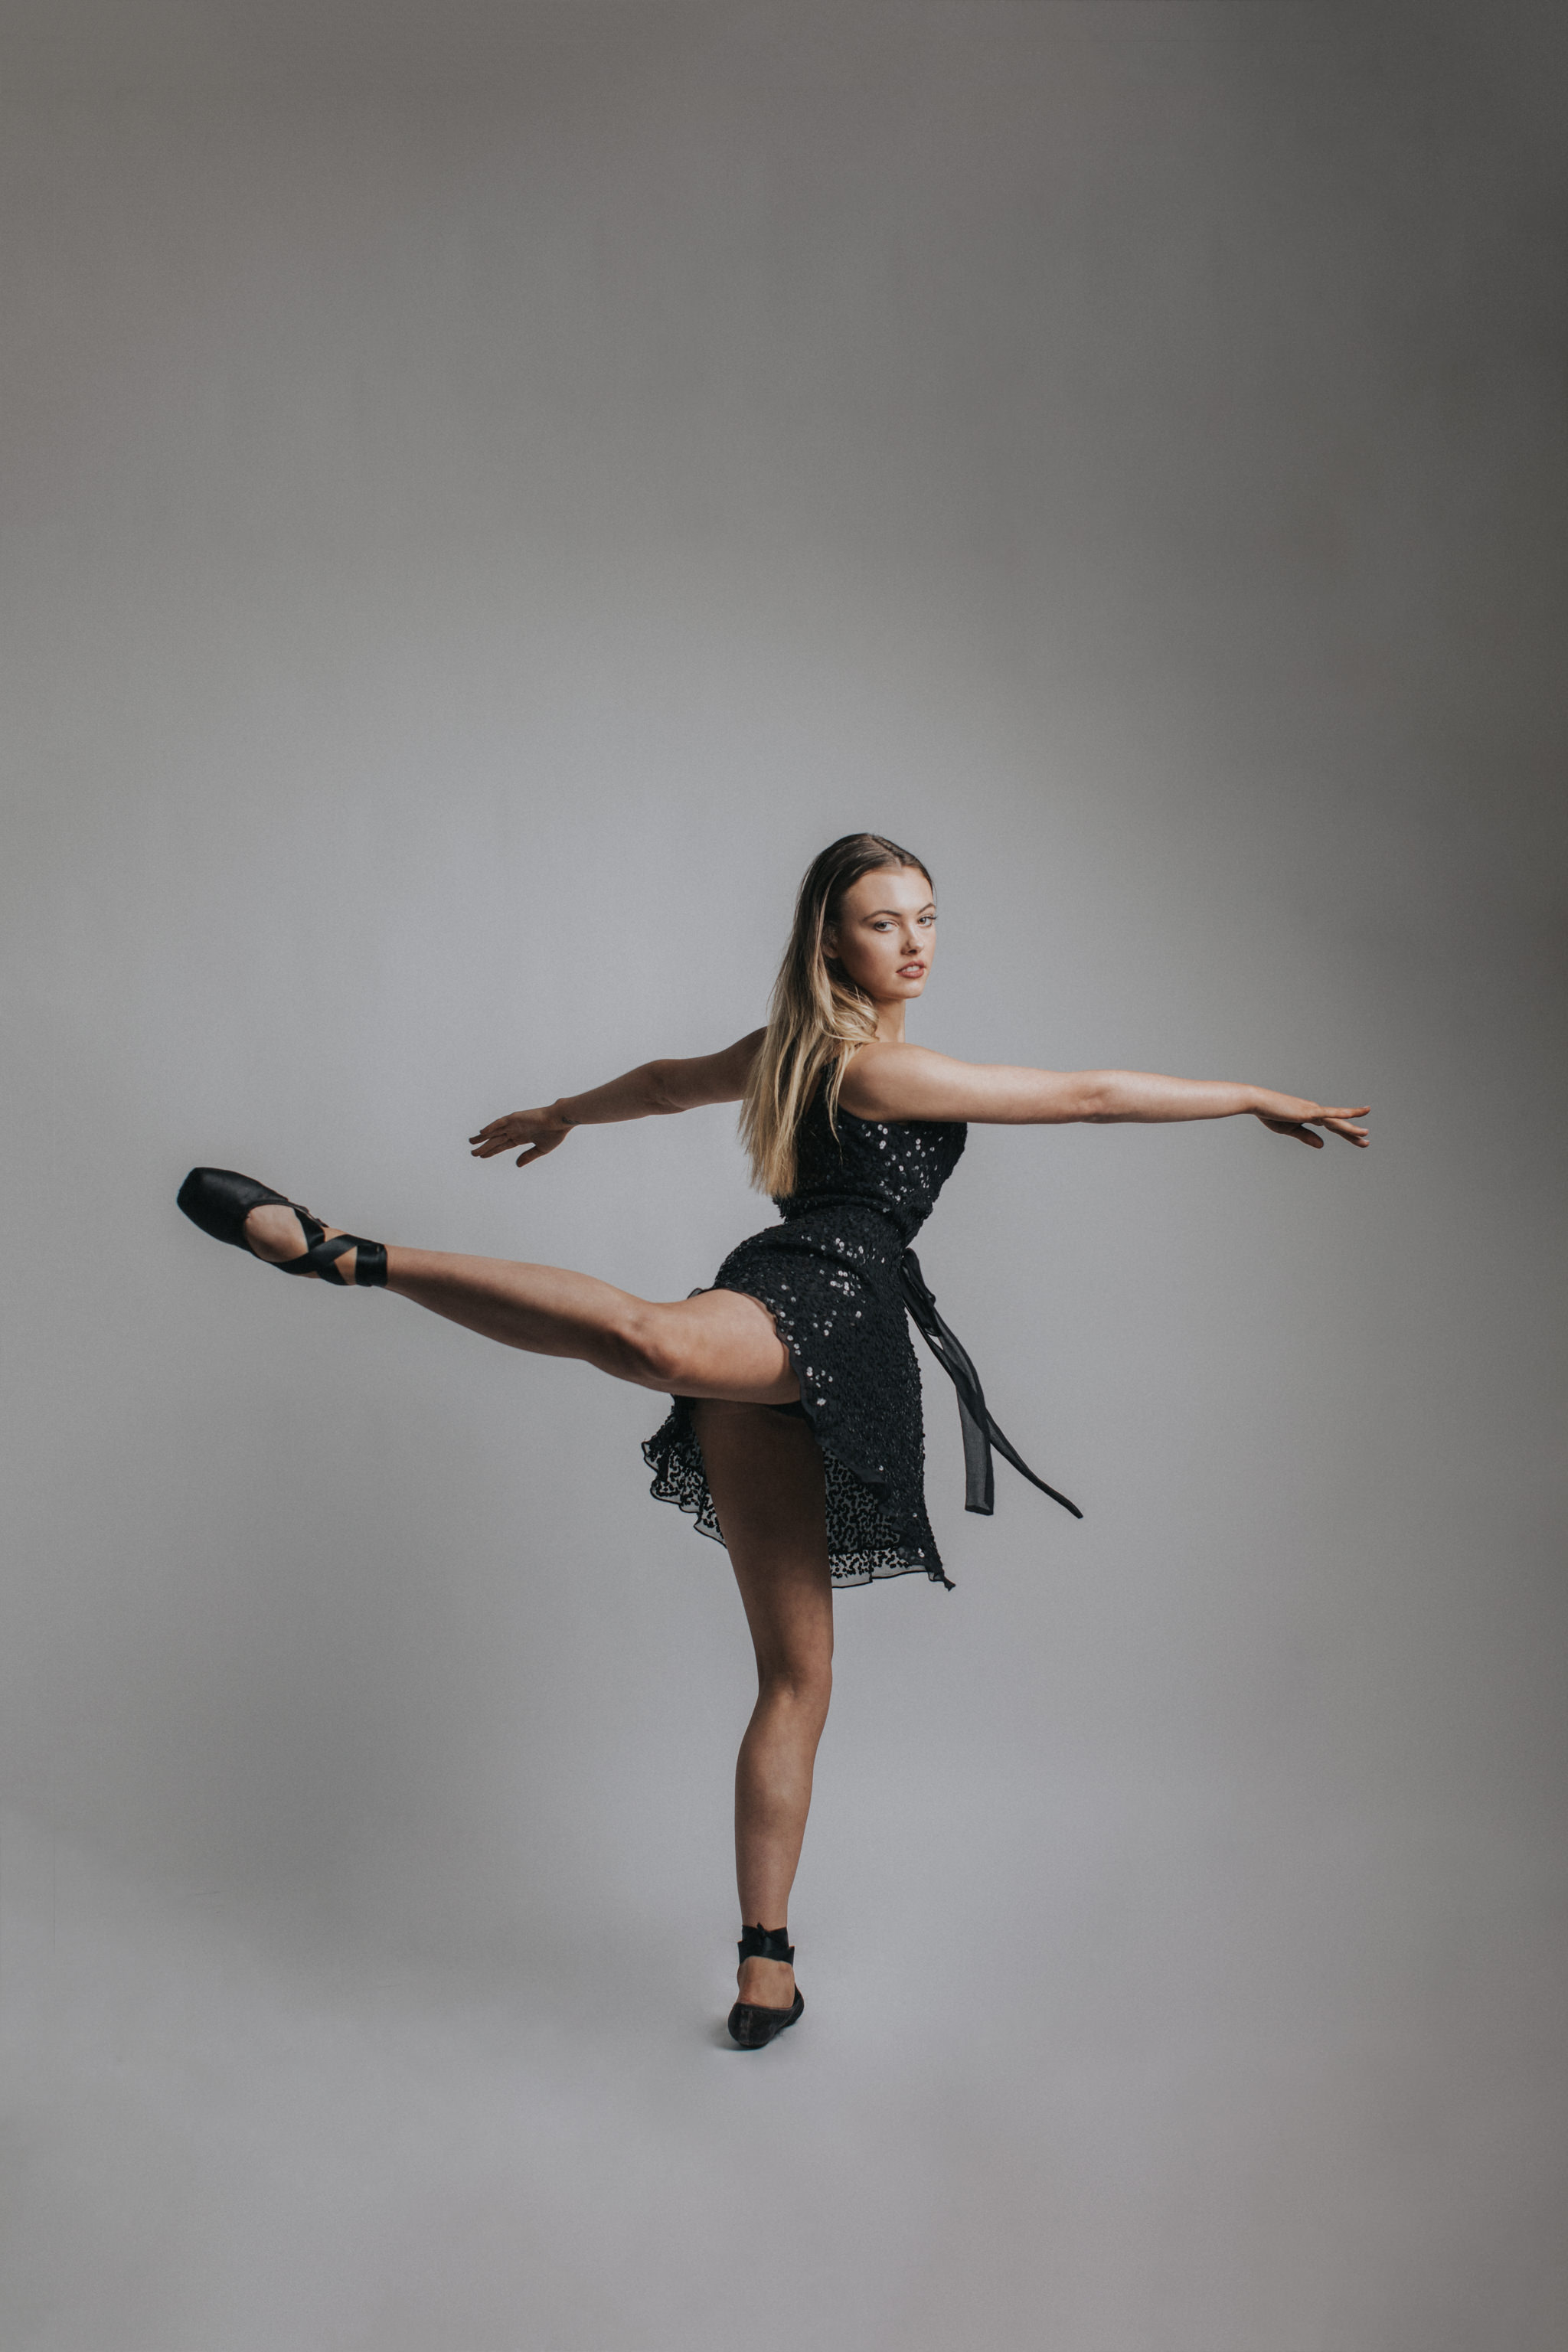 dance photos in melbourne - dance studio photography